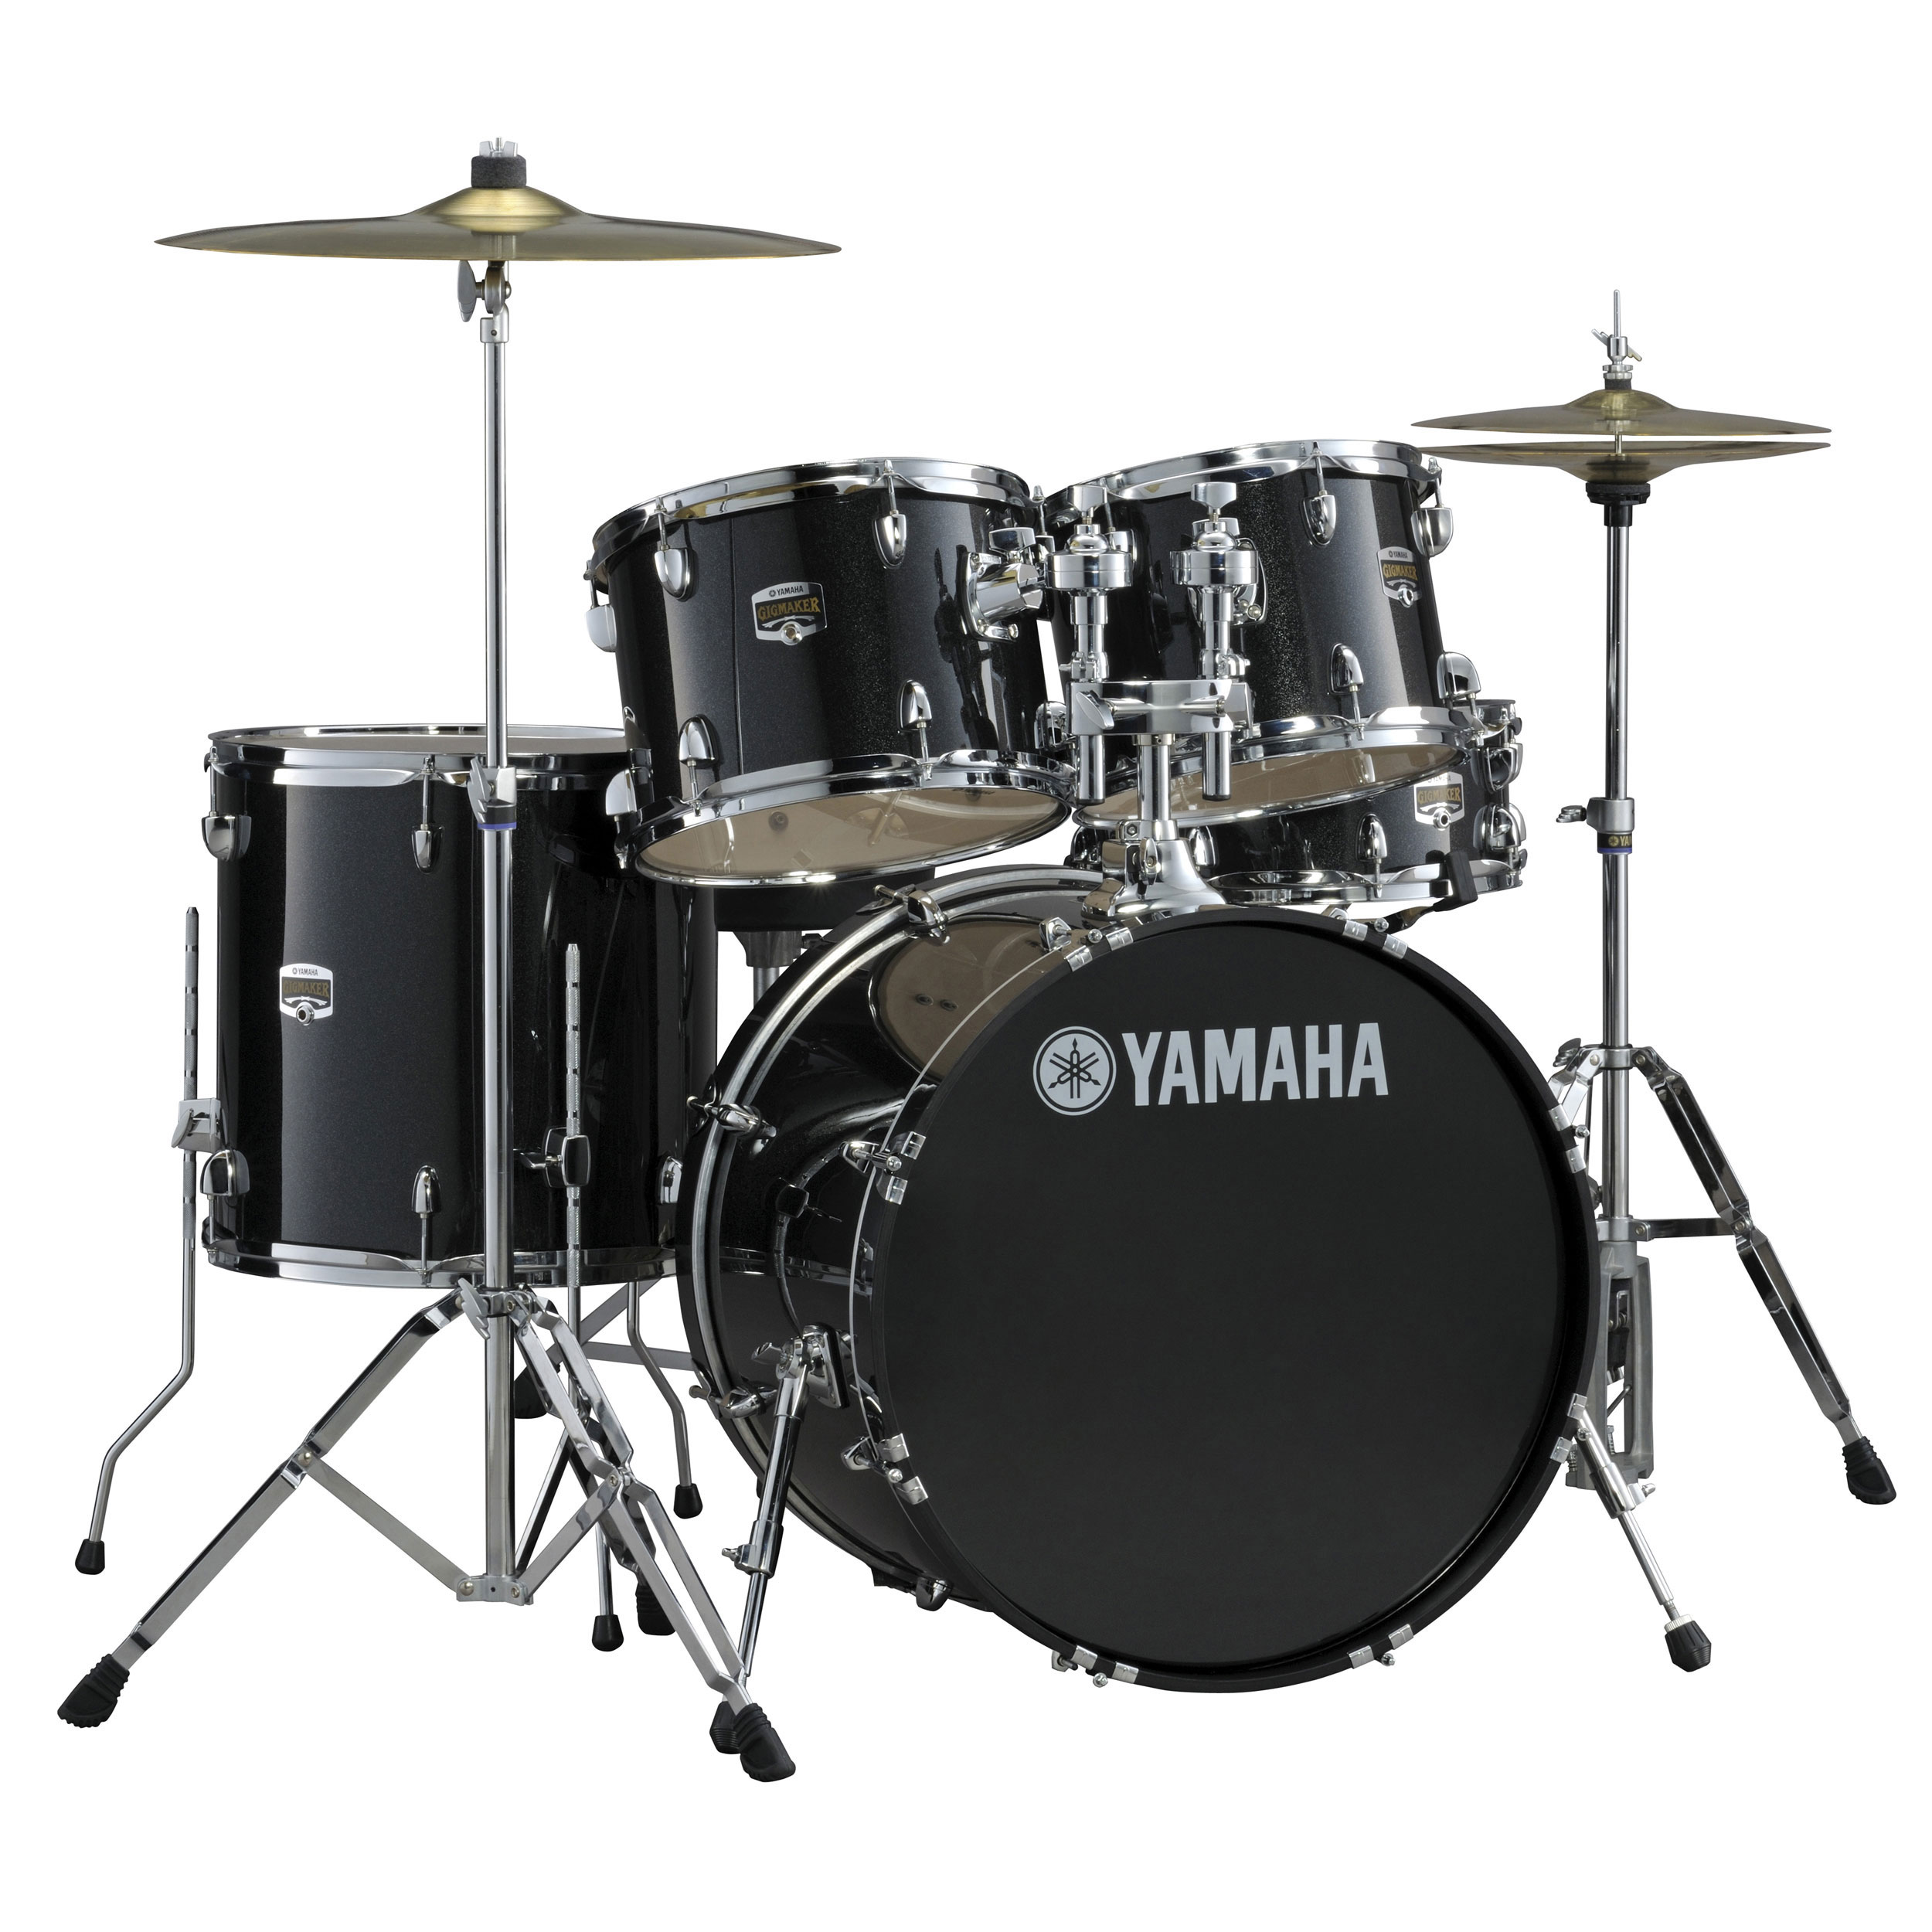 "Yamaha GigMaker 5-Piece Drum Set with Hardware (22"" Bass, 12/13/16"" Toms, 14"" Snare)"